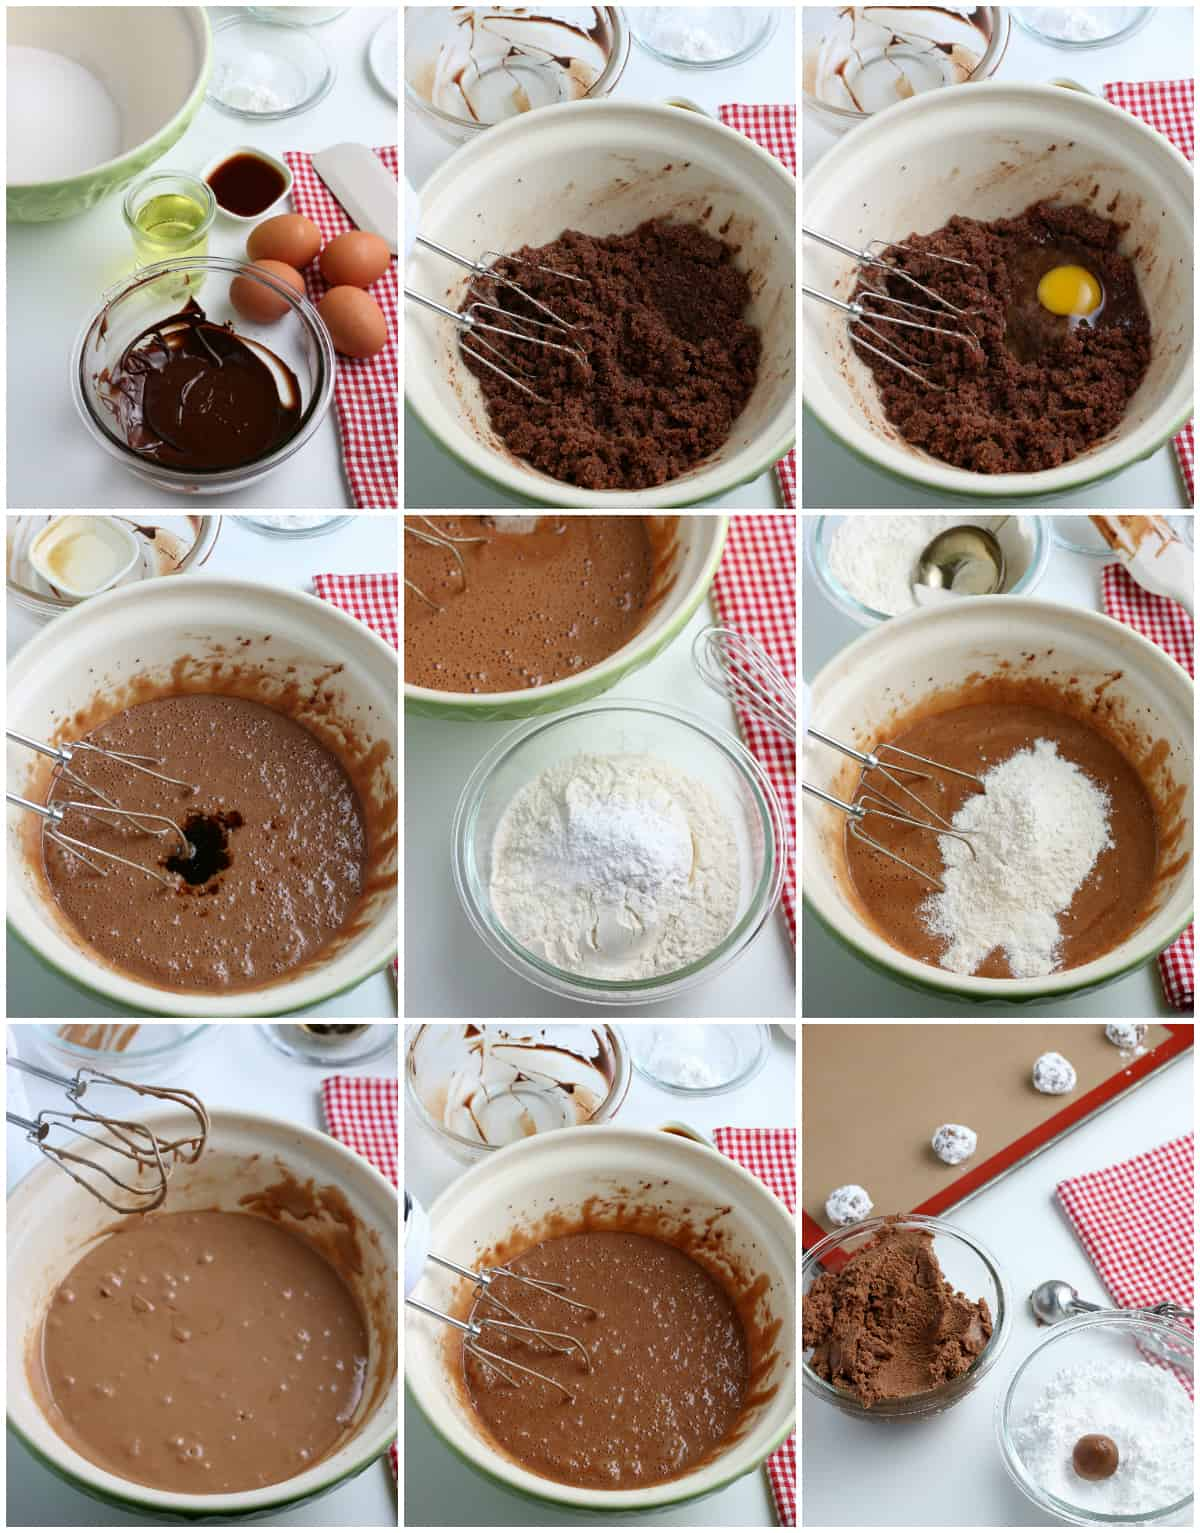 Step by step photos on how to make Chocolate Crinkle Cookies